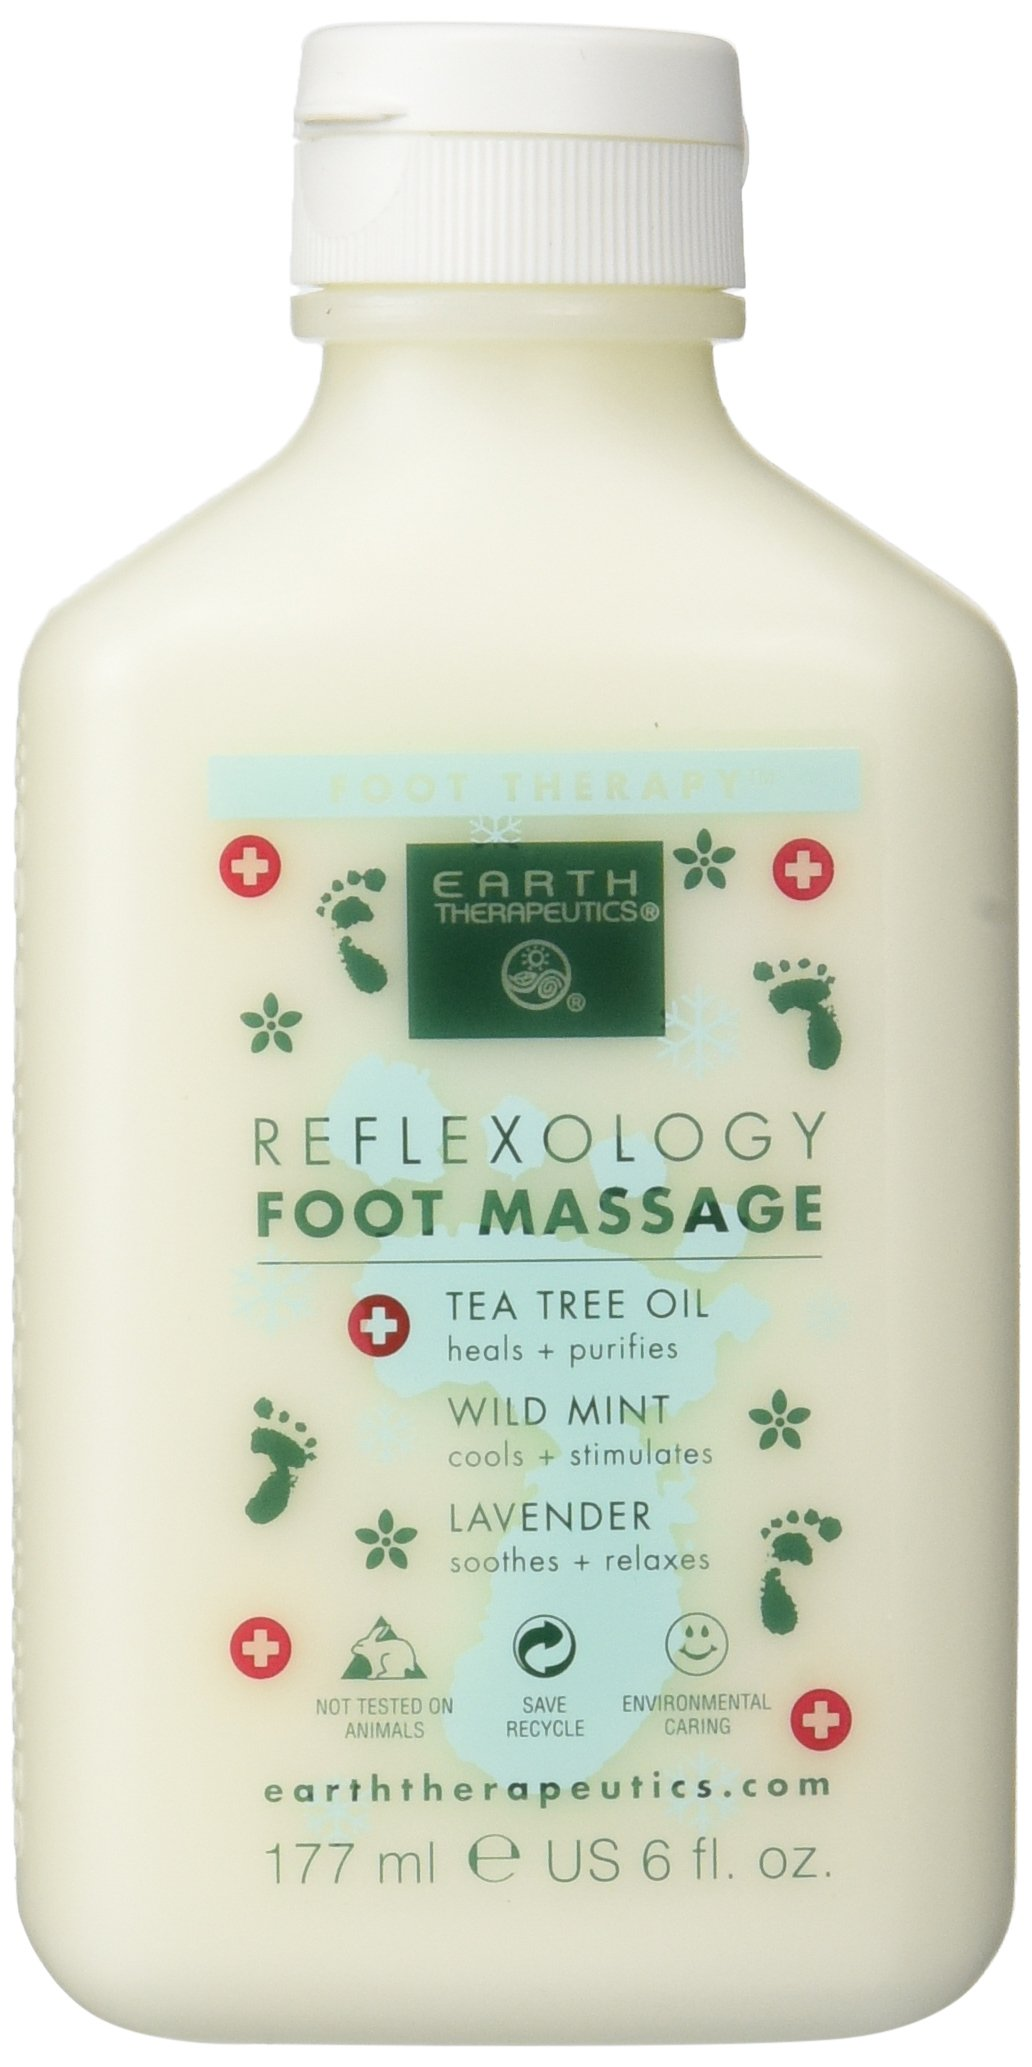 Earth Therapeutics Reflexology Foot Massage Lotion by Earth Therapeutics